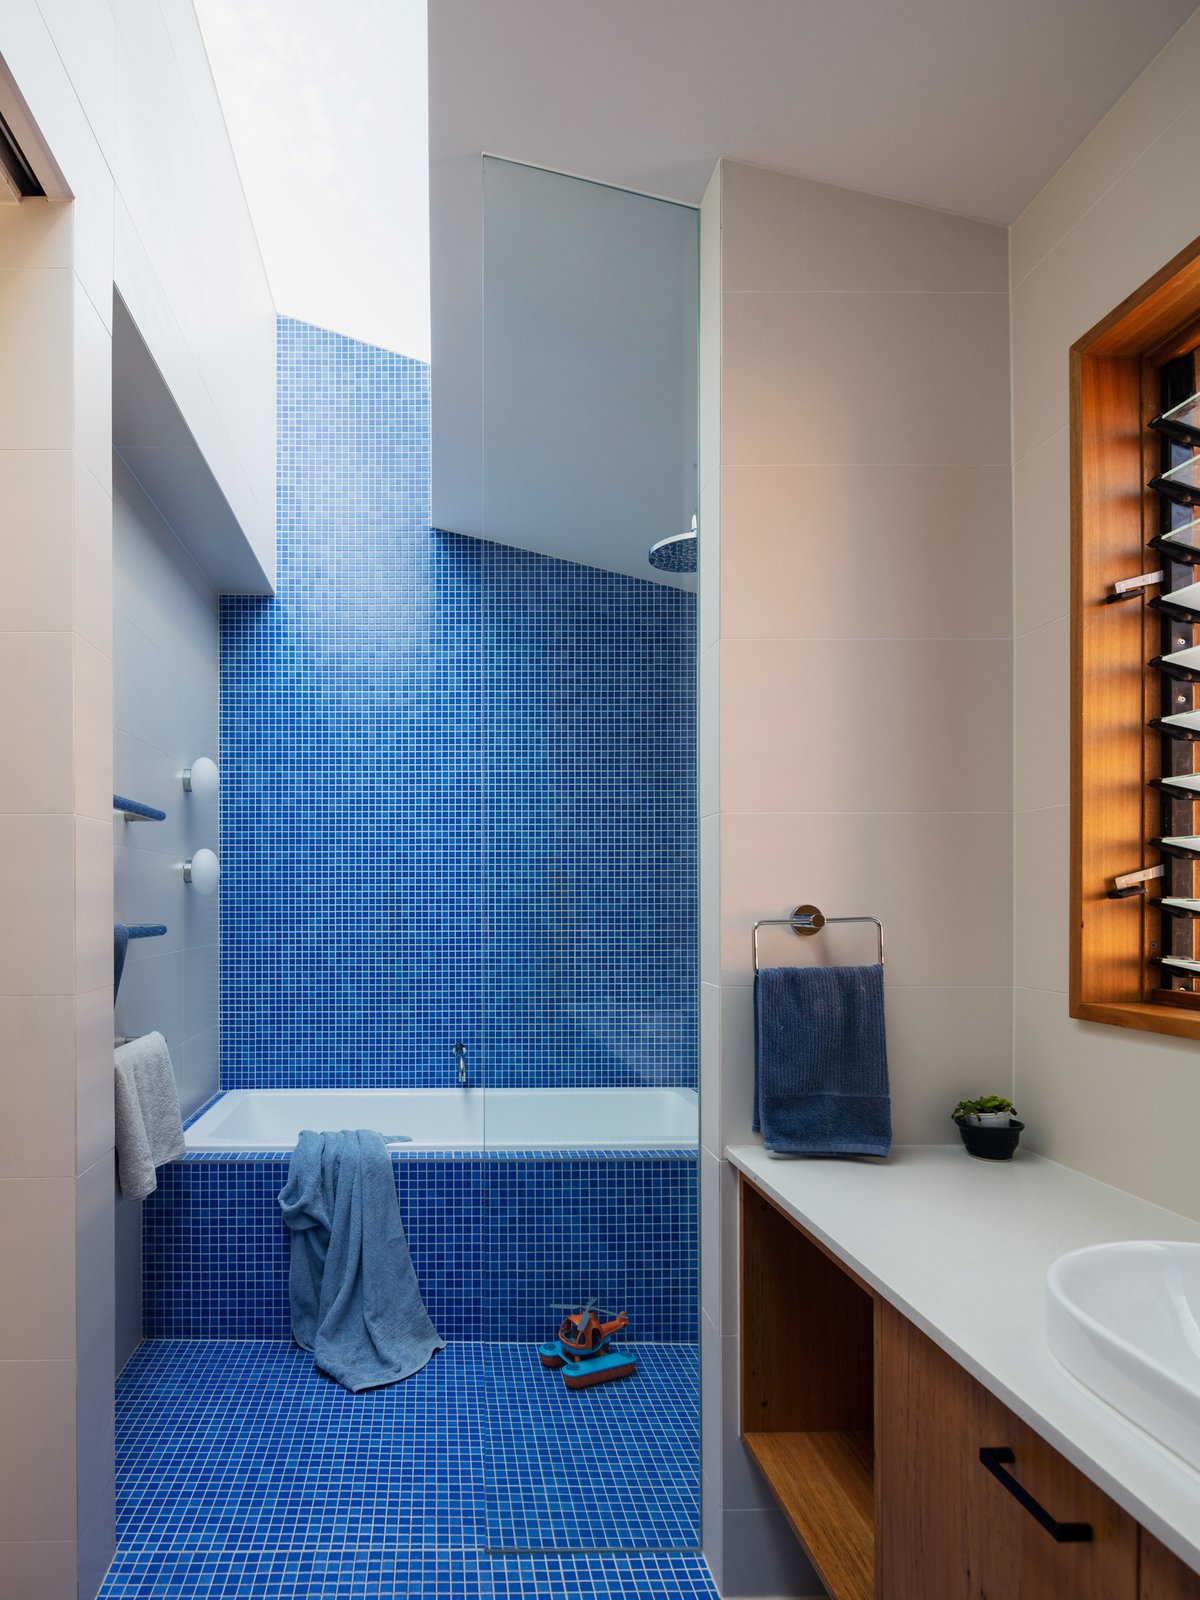 Elm Street House by Gardiner Architects Kid's Bath